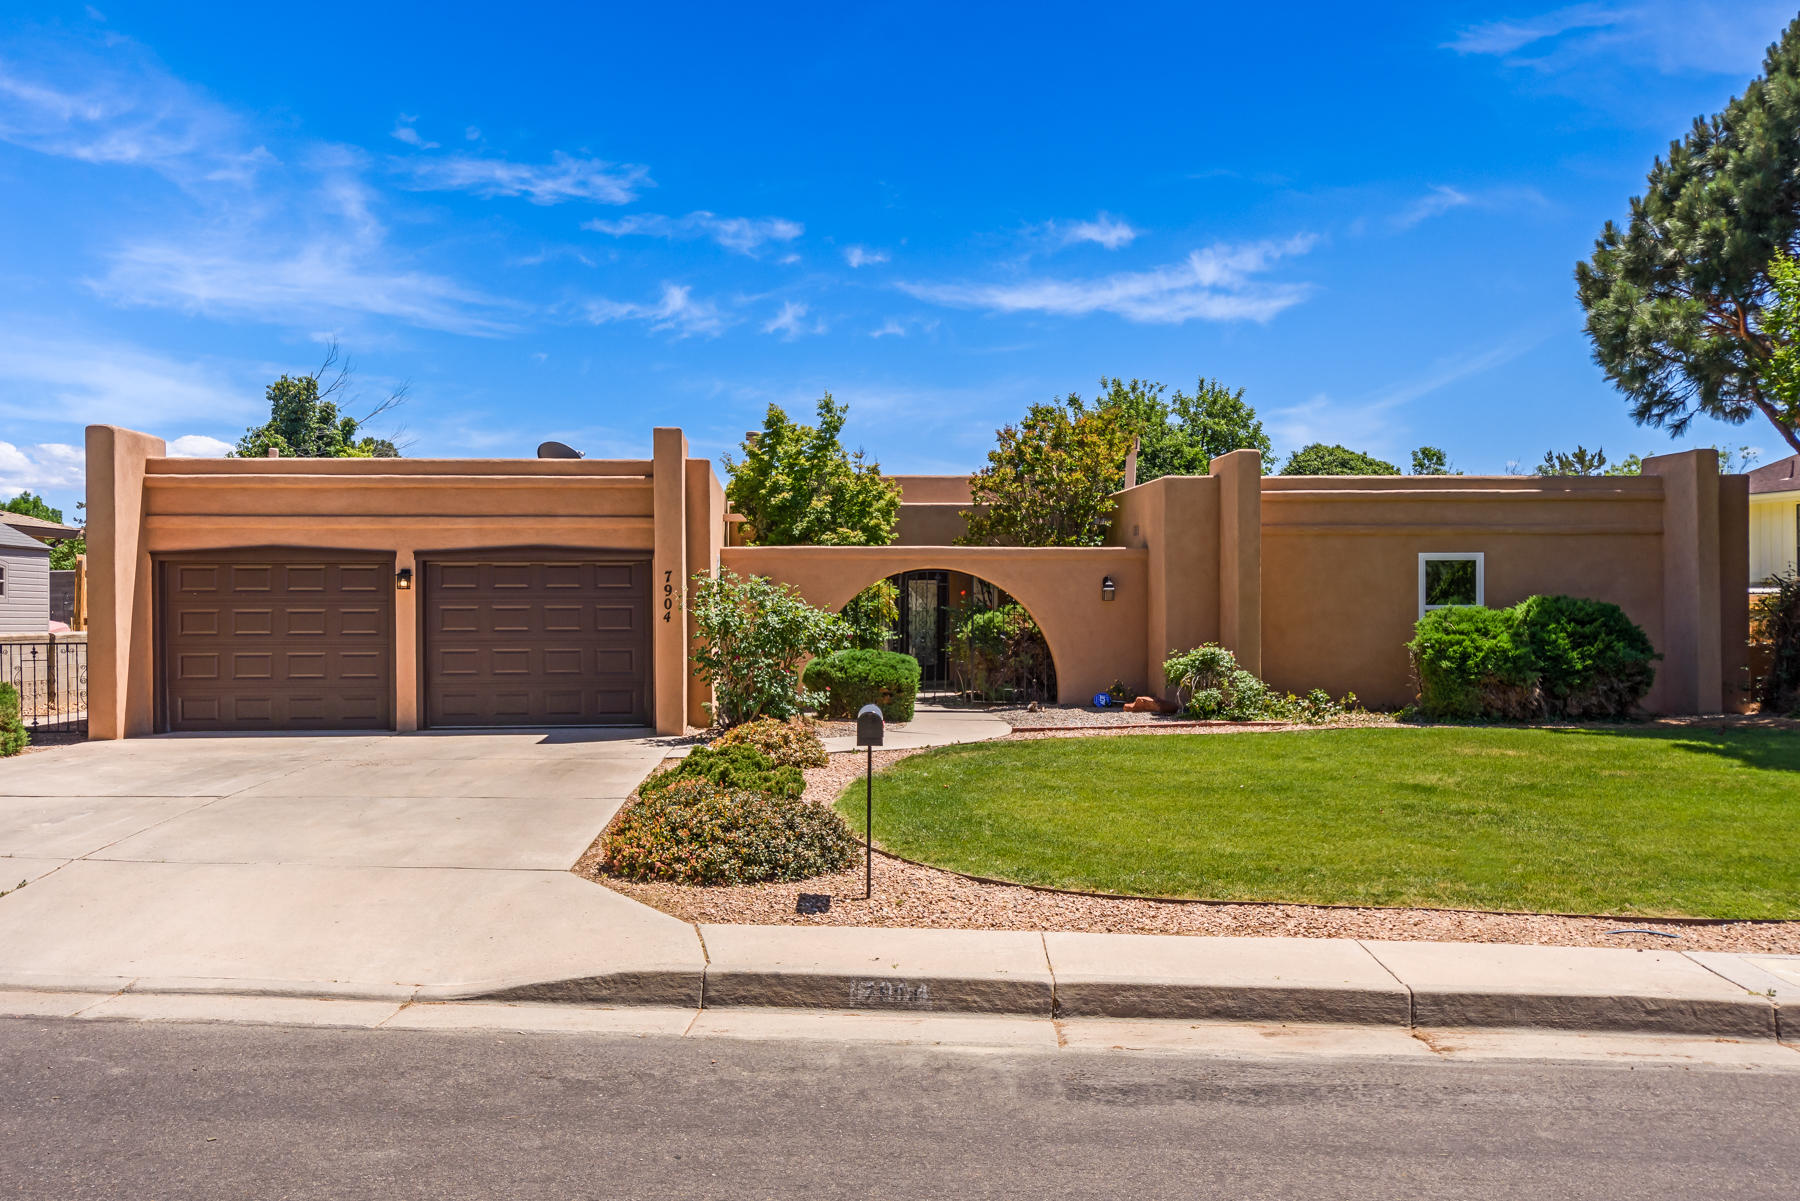 7904 CHARGER Trail NE, Albuquerque, NM 87109 - Albuquerque, NM real estate listing